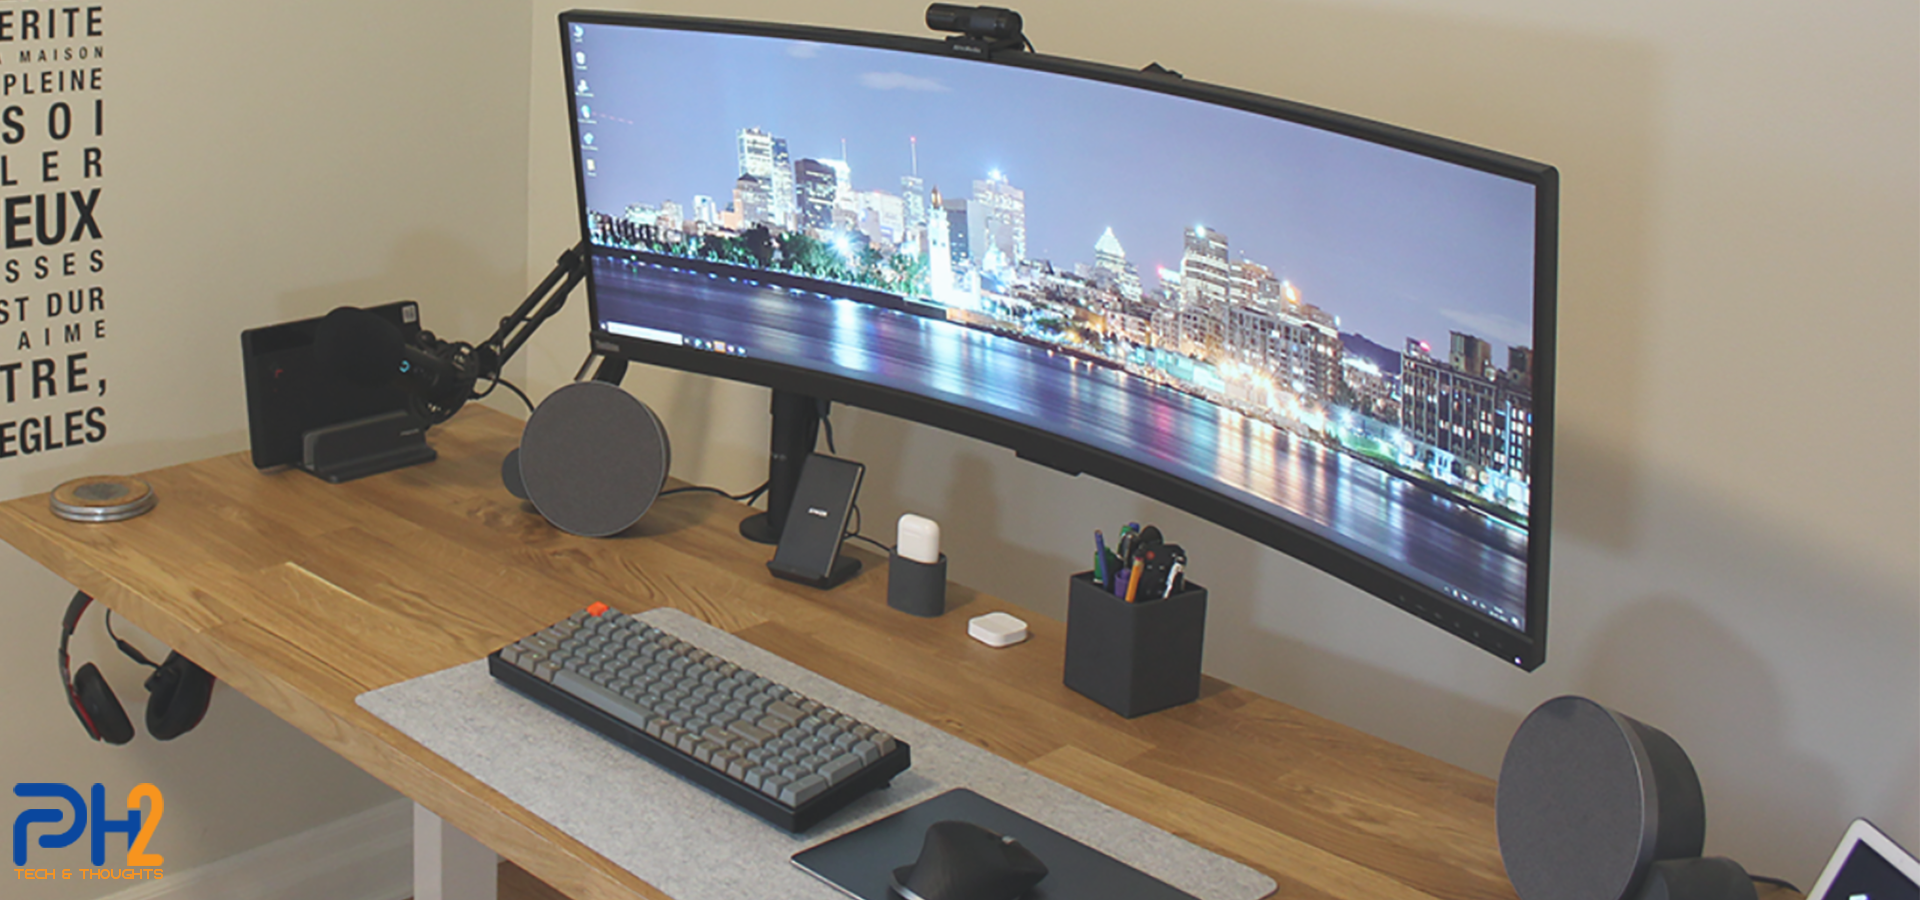 Work from home desk setup 2021